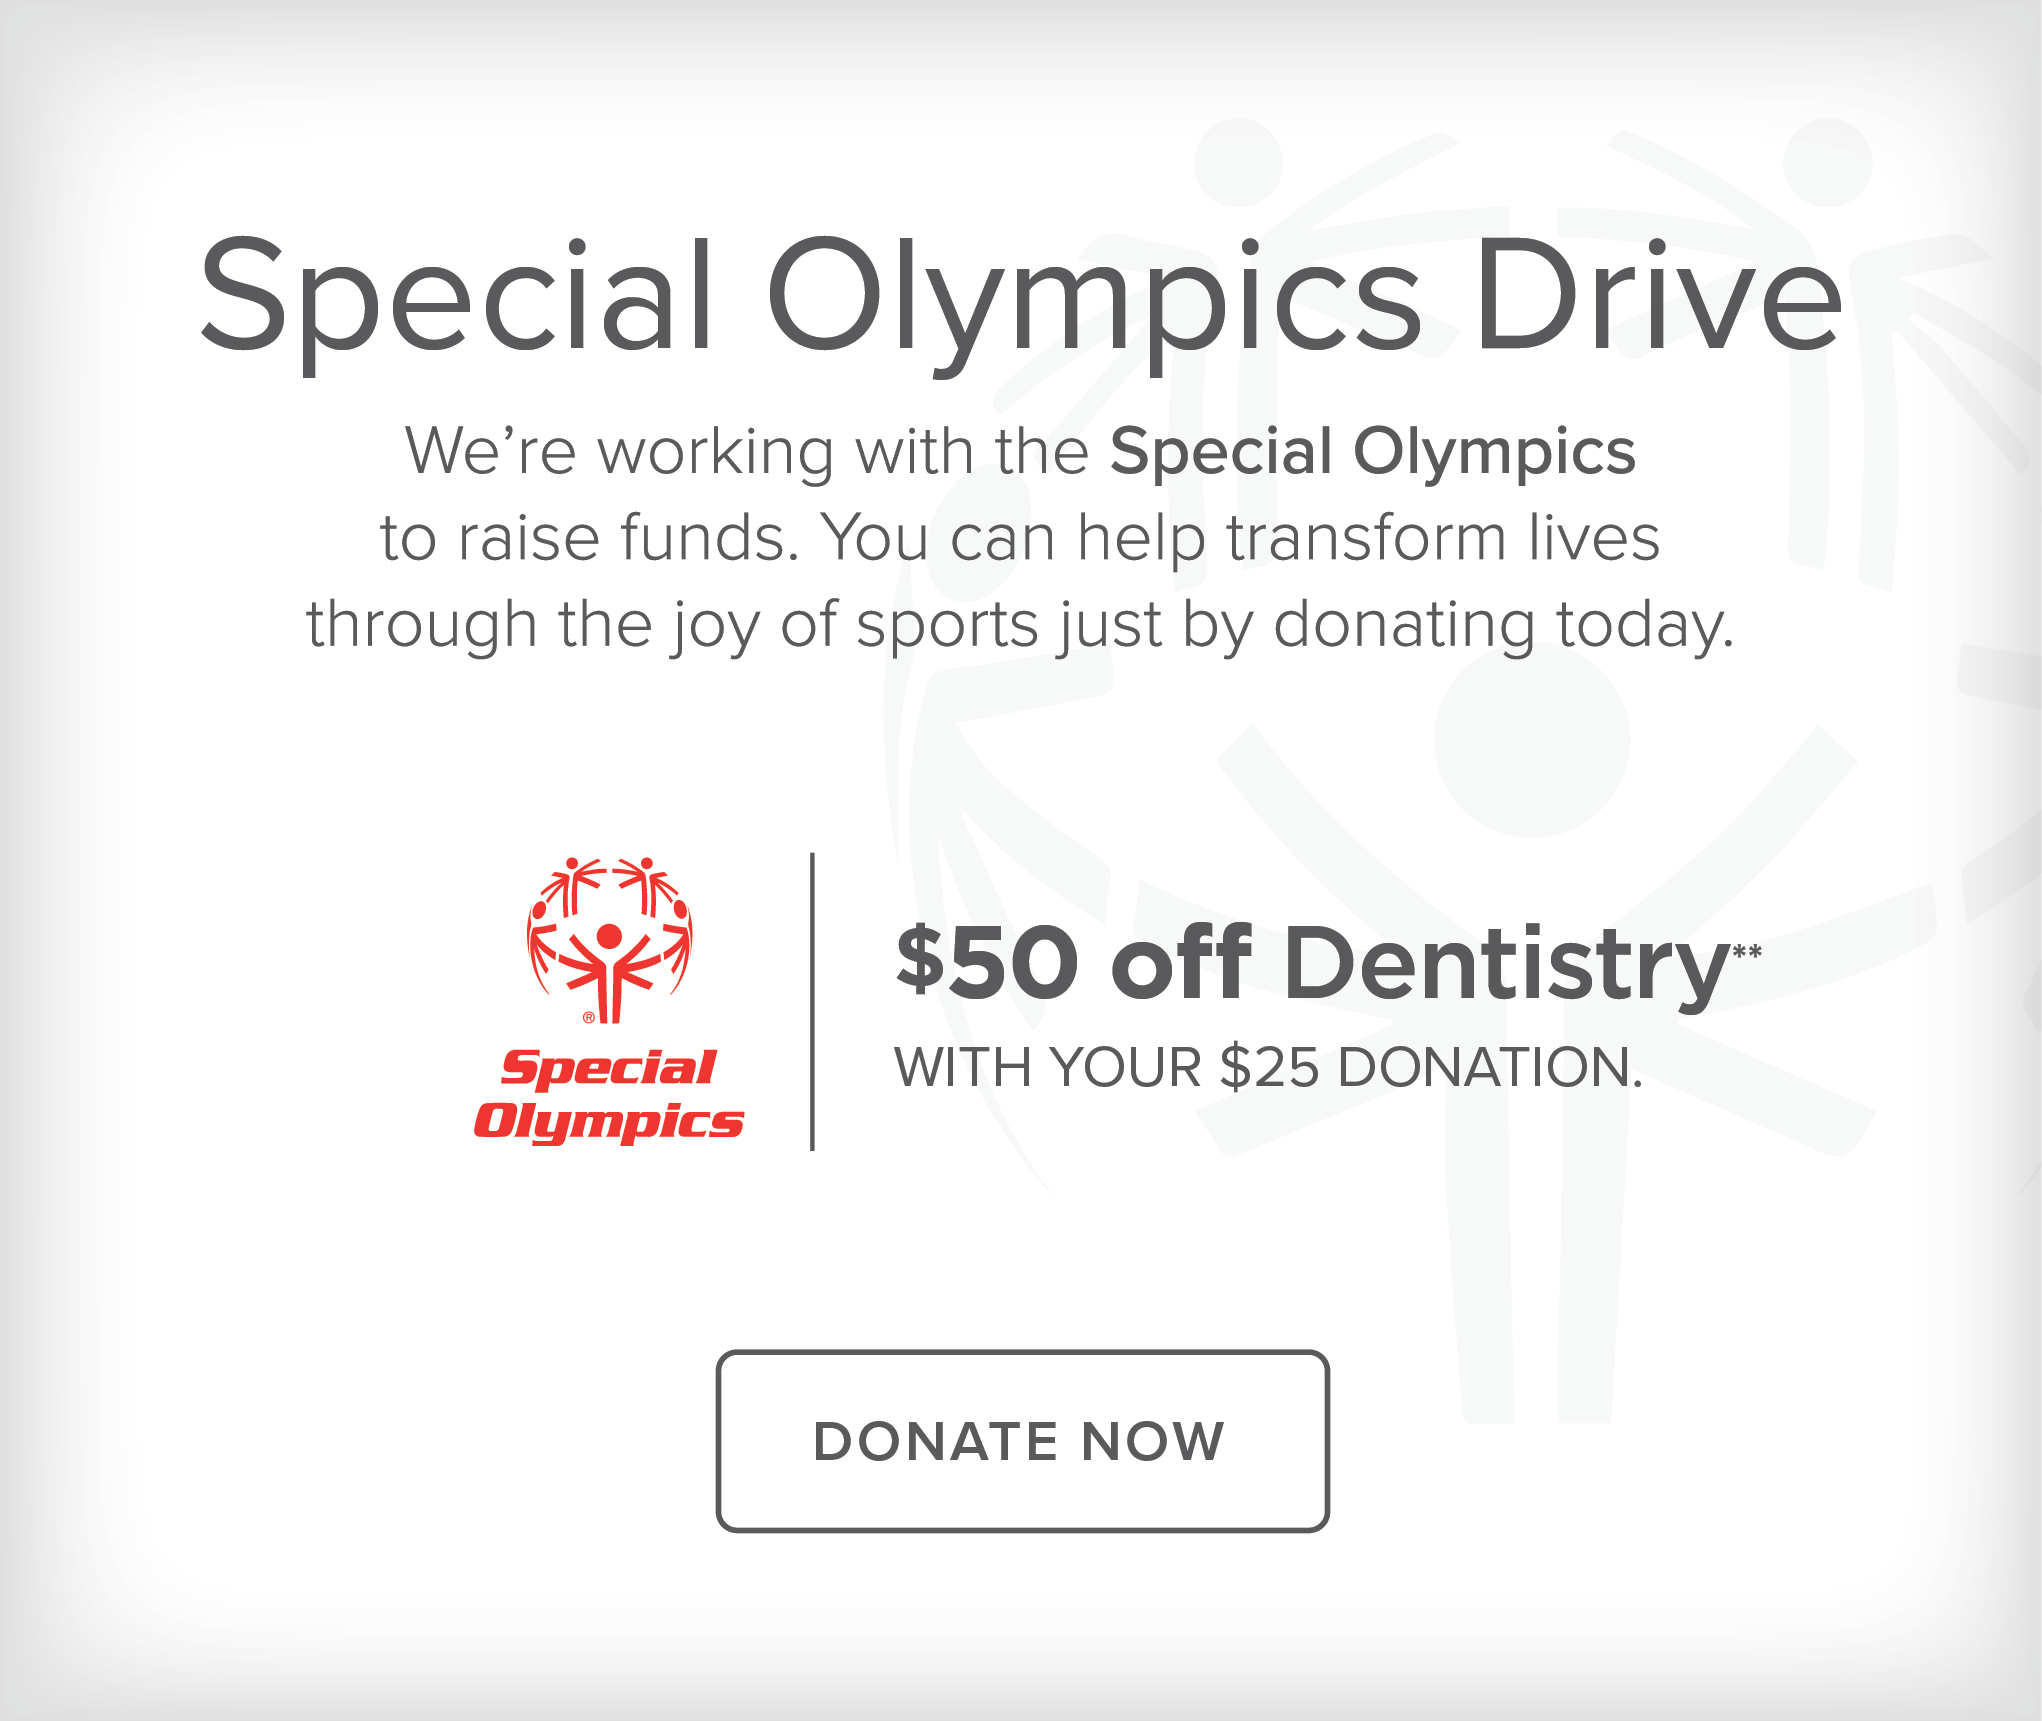 Special Olympics Drive - Cheyenne Mountain Modern Dentistry and Orthodontics